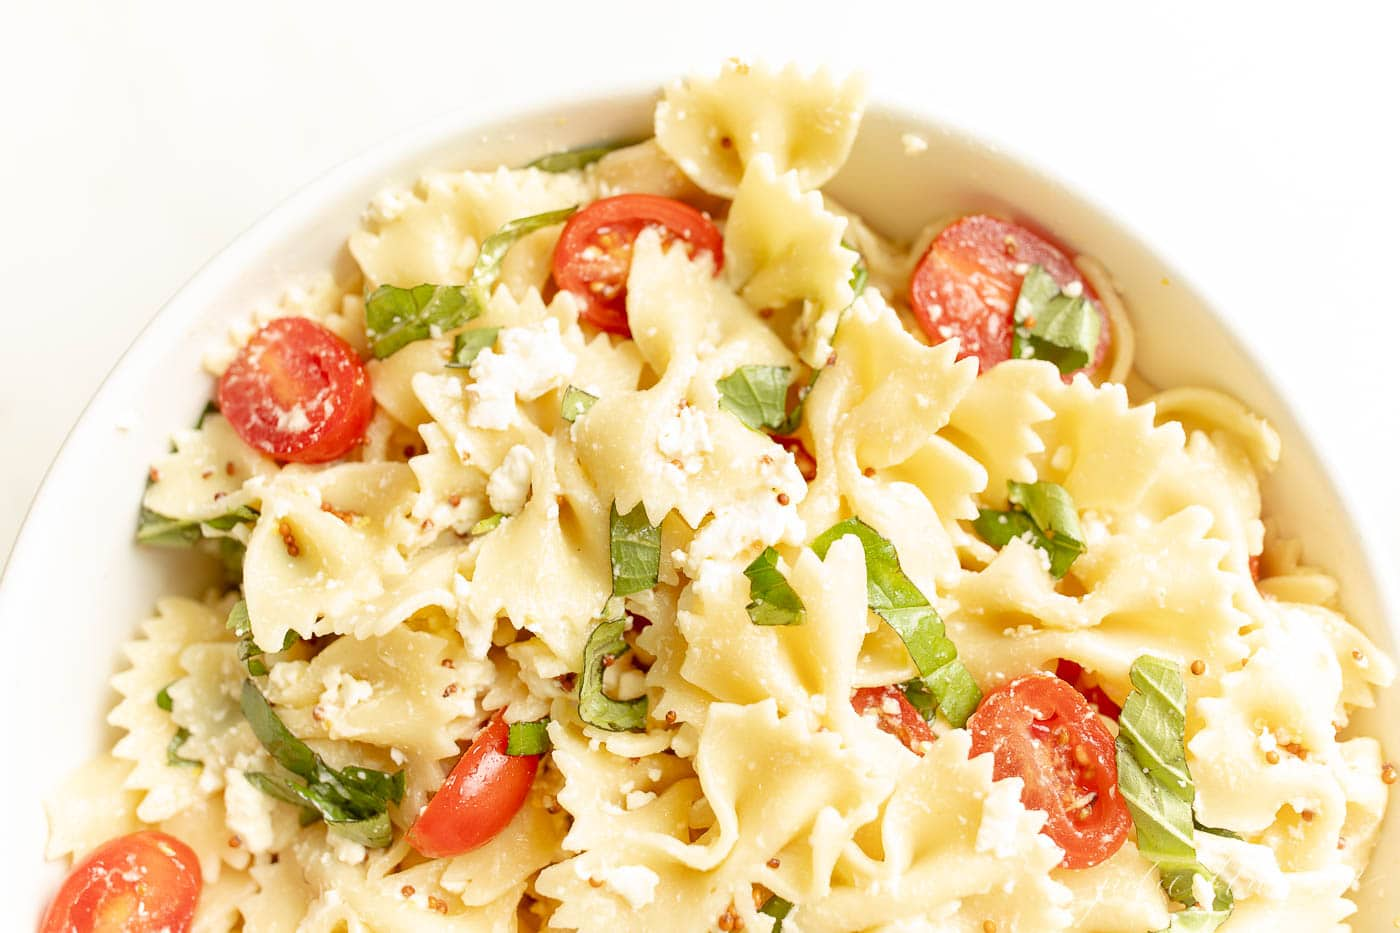 easy pasta salad recipe in a bowl with tomato and basil